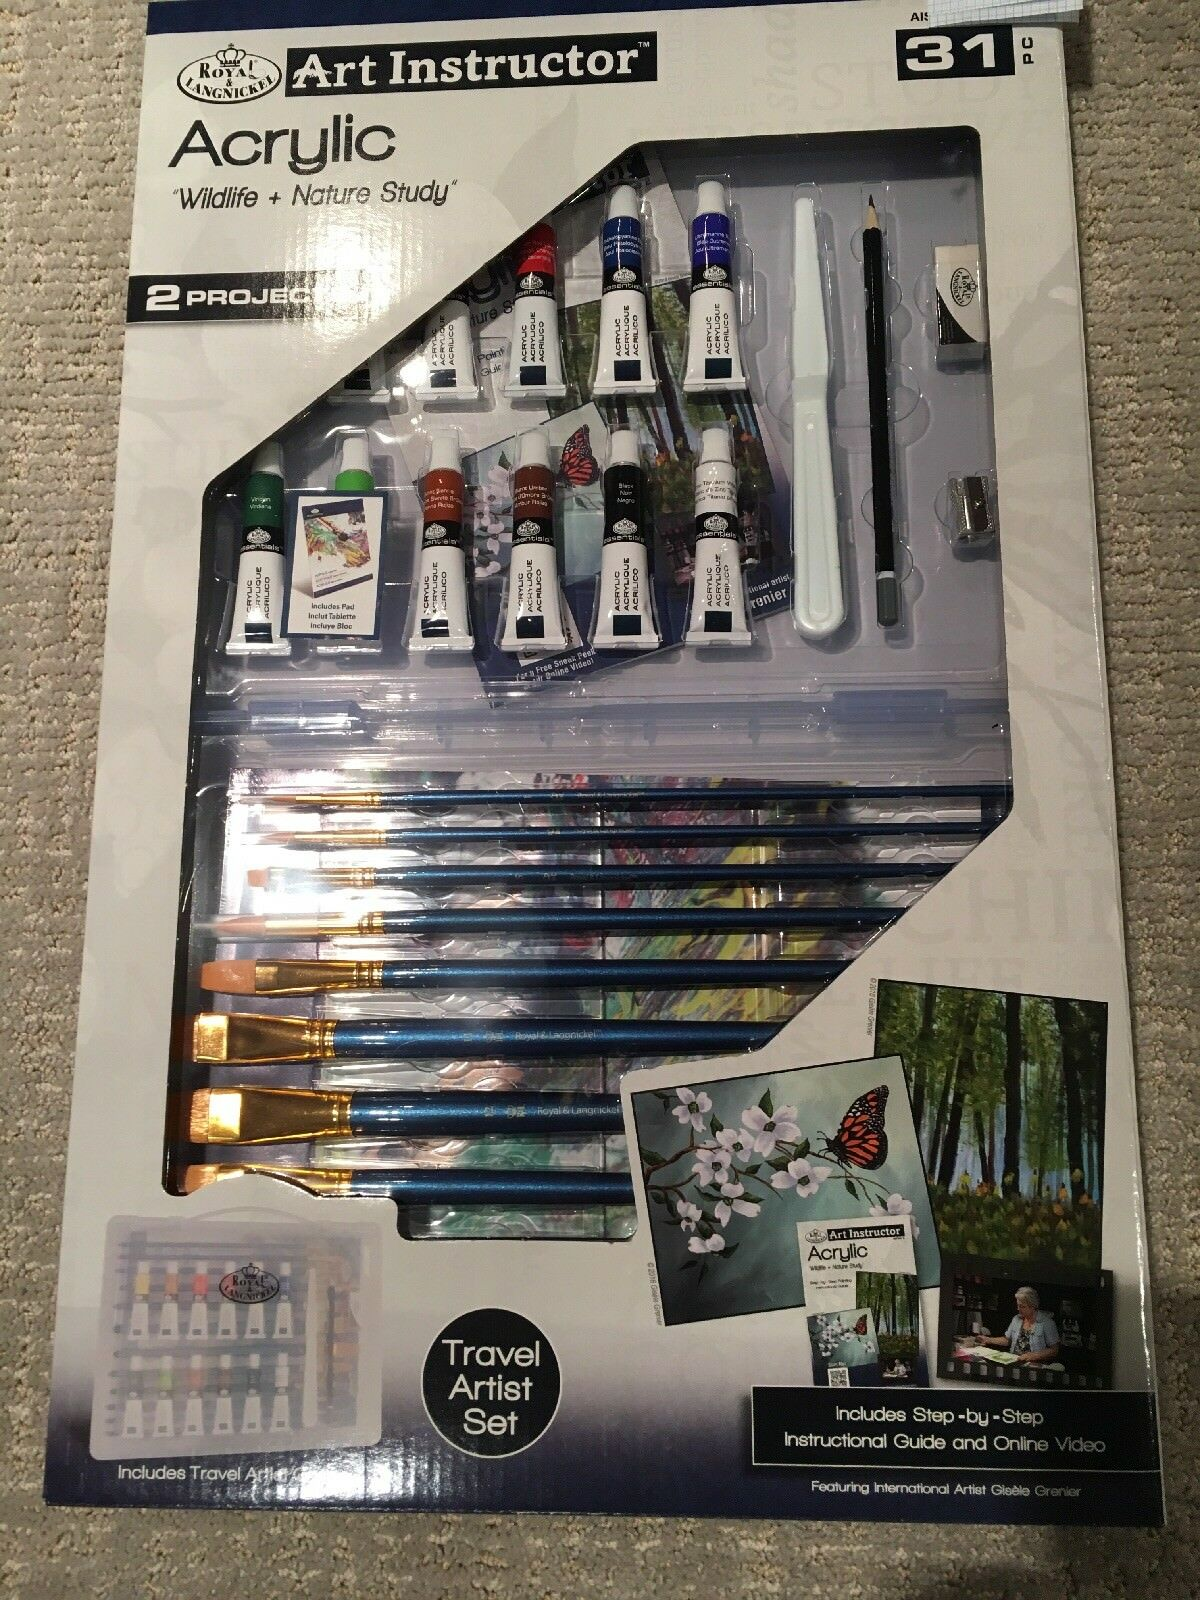 NEW  Acrylic Art Instructor Set Wildlife & Nature Study 31 Piece Paint Brushes